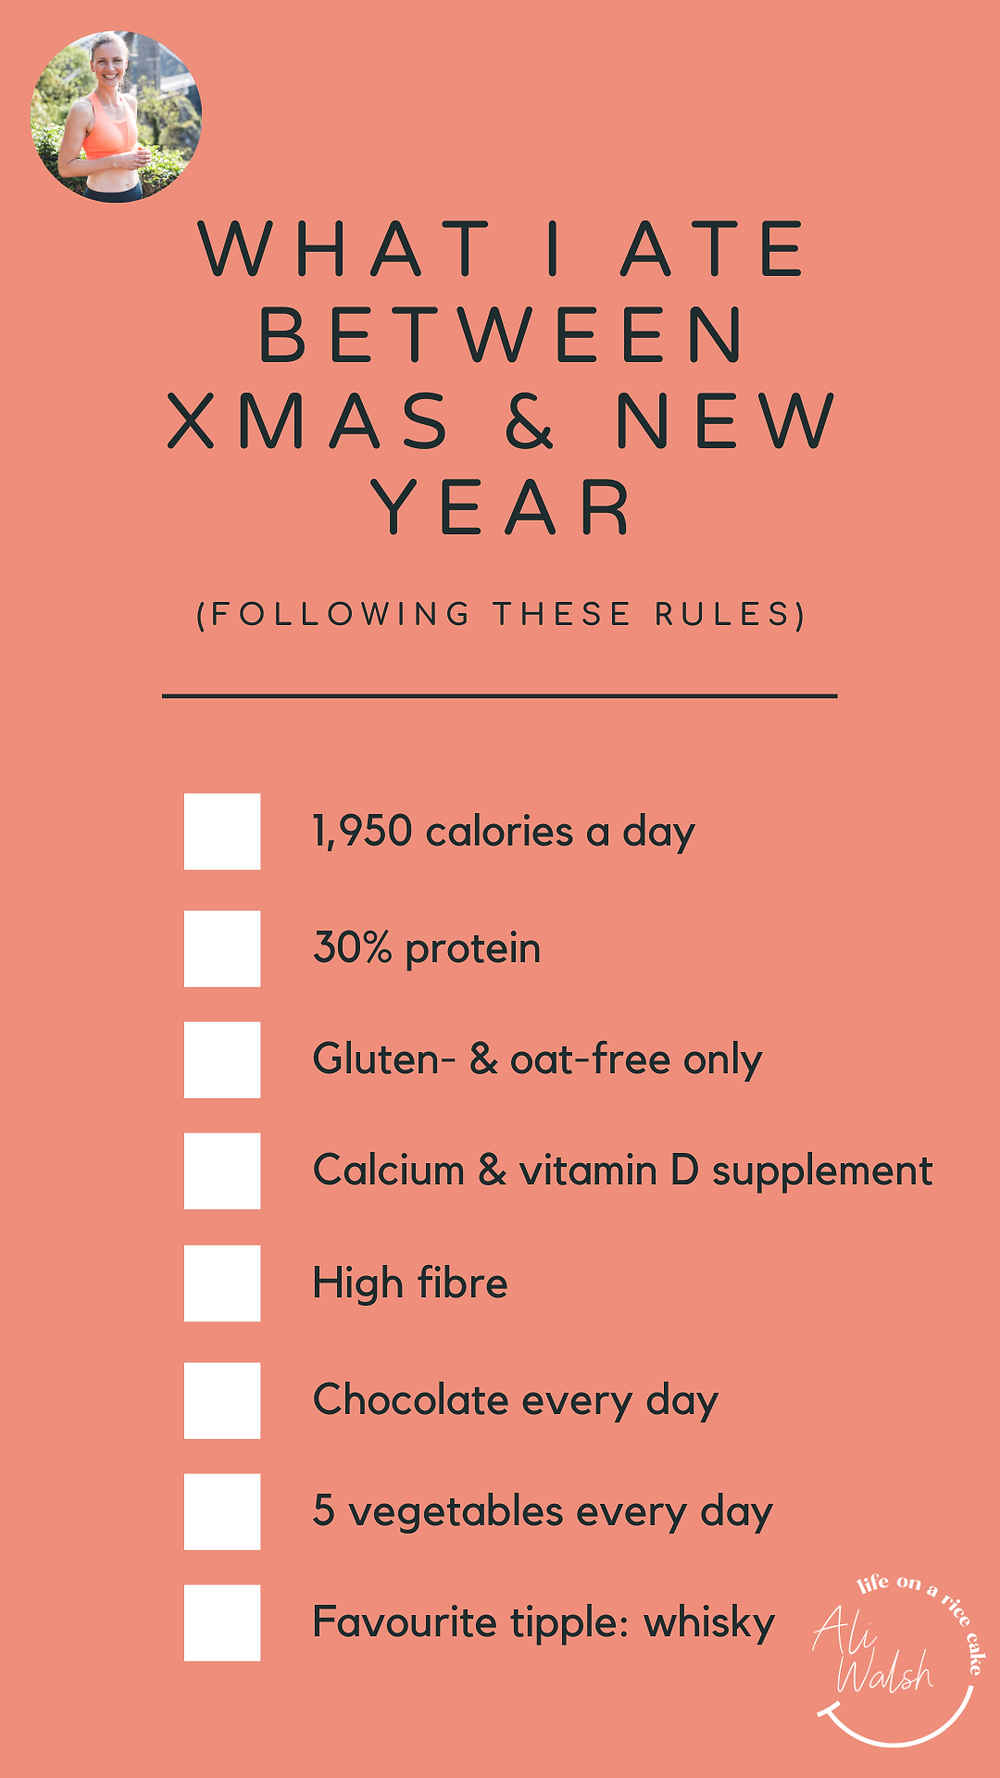 What I ate between Xmas and New Year